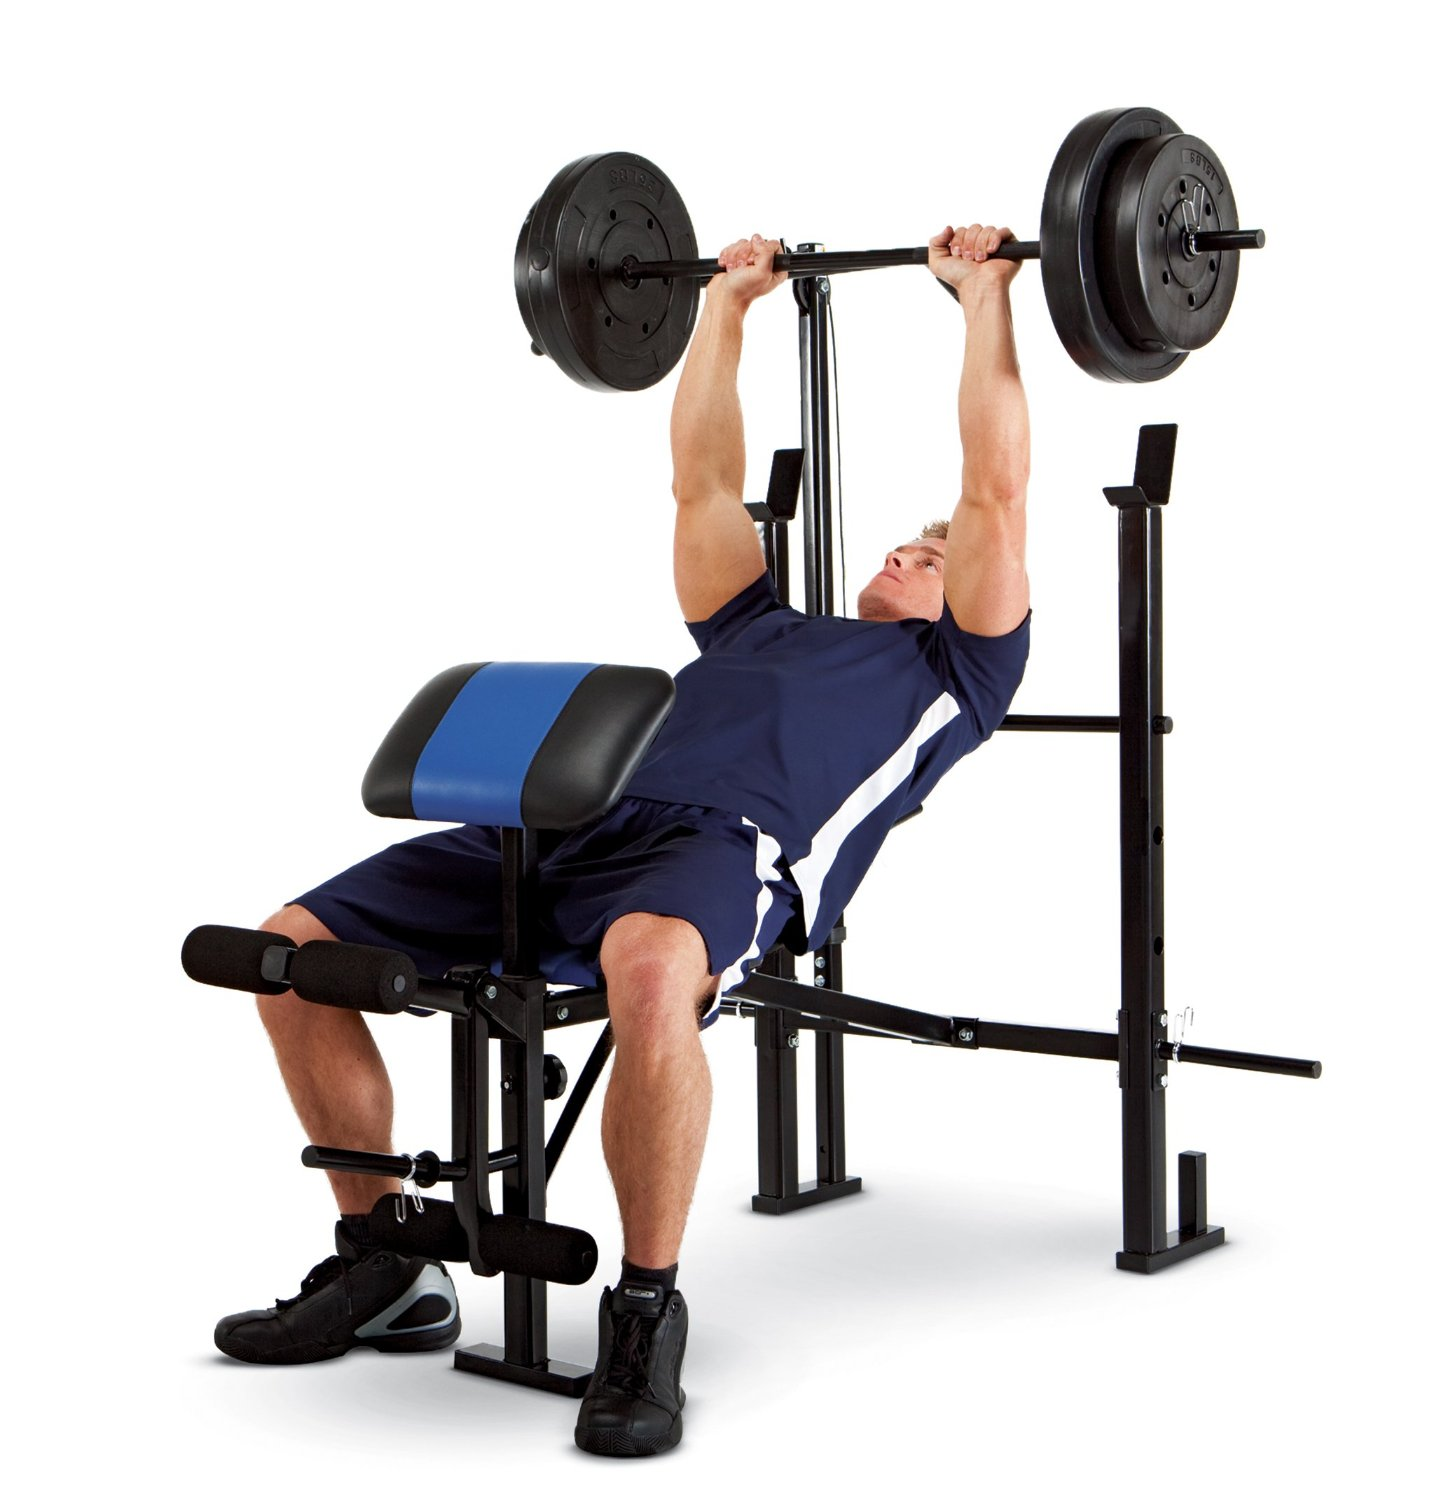 benches home olympic bench gold the p s gym xrs golds depot weight